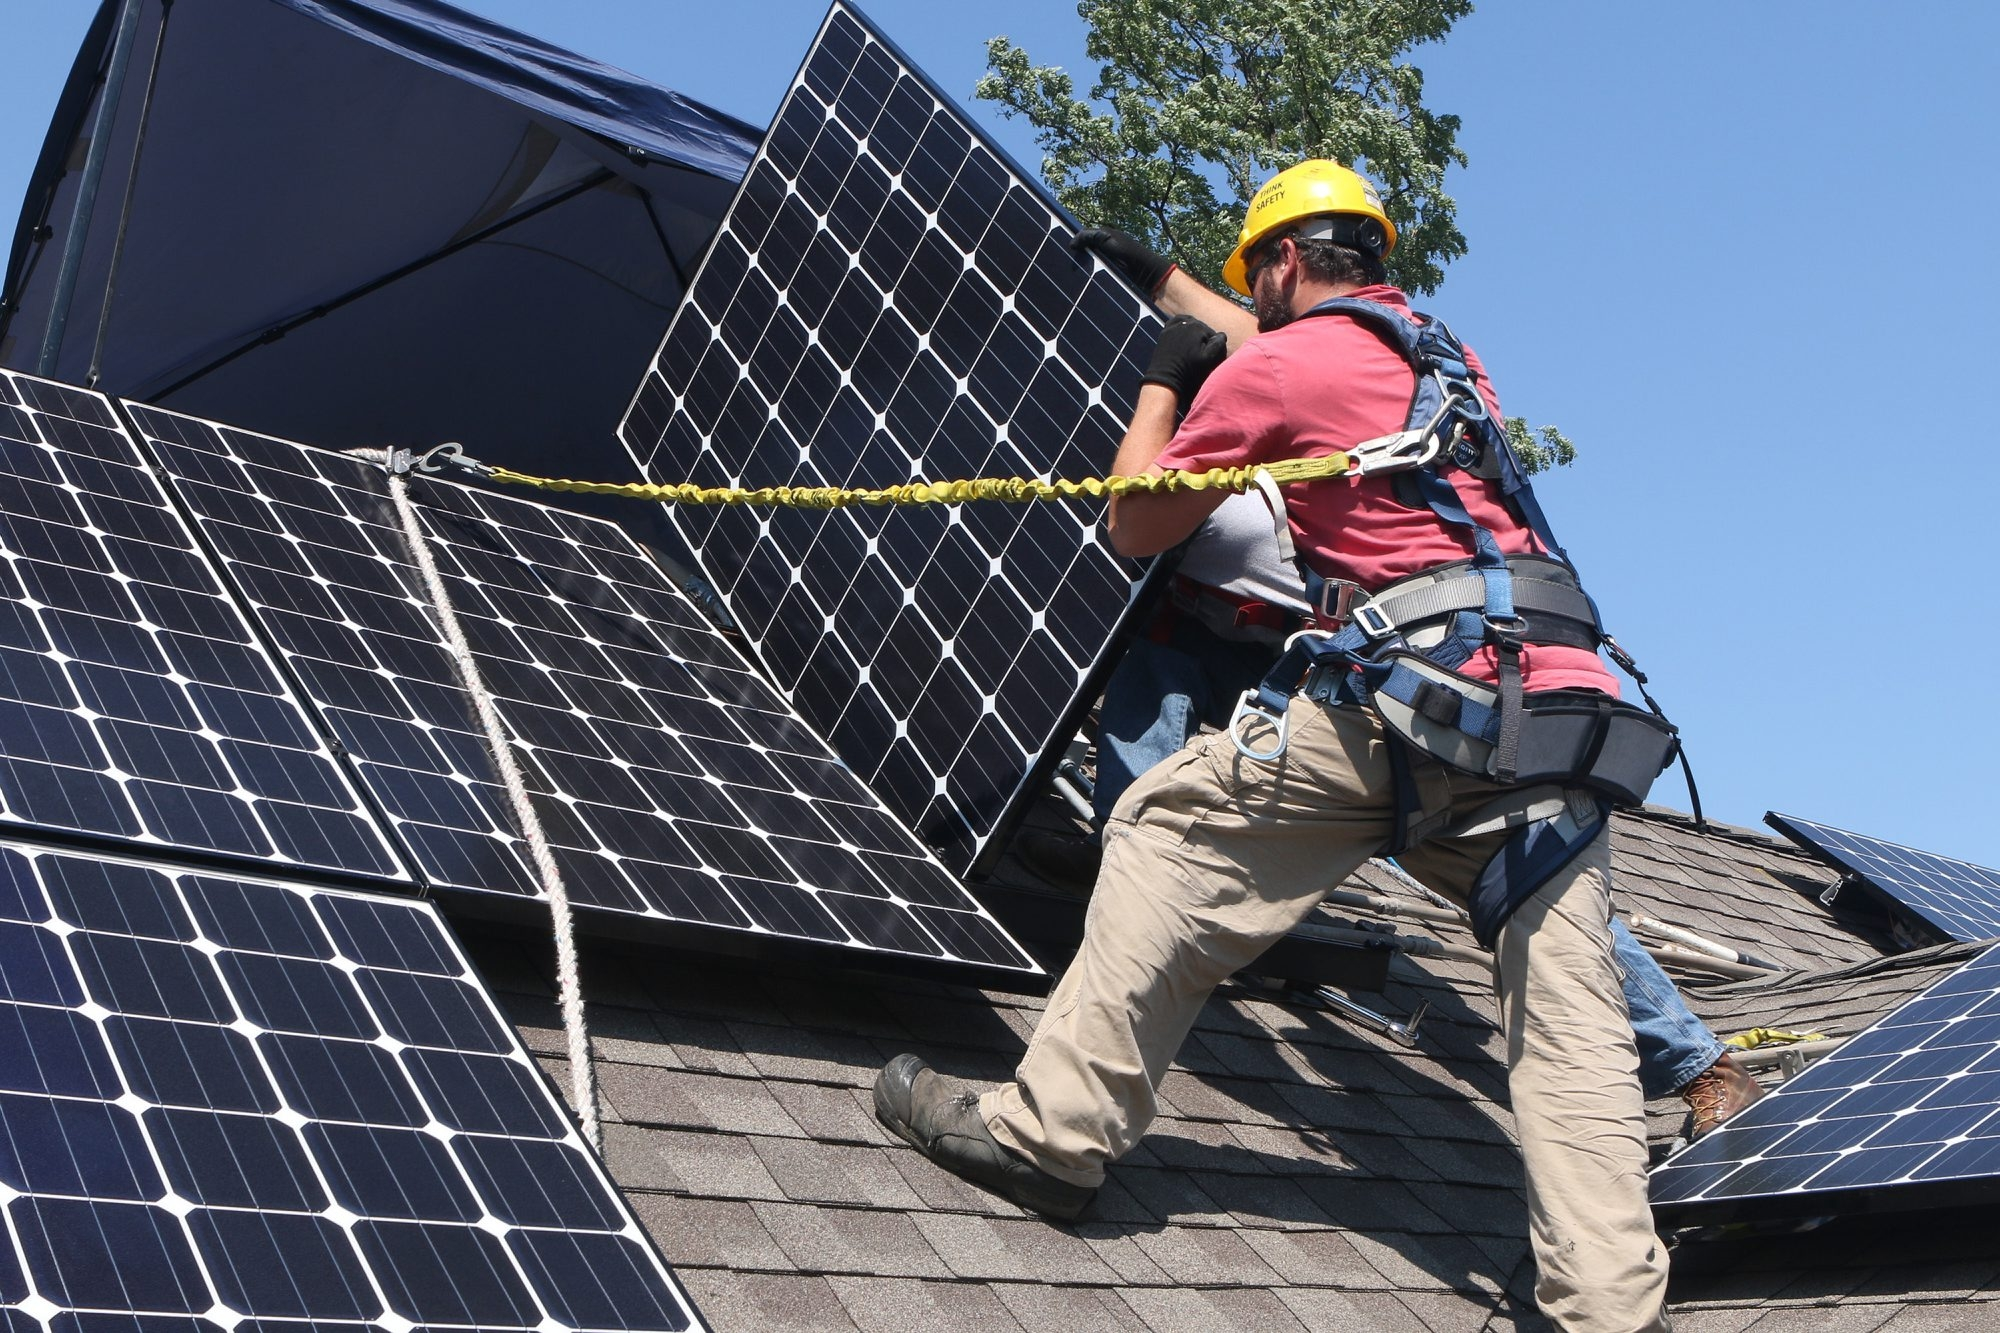 Workers install Solar Service Inc. photovoltaic solar electric panels on the roof of a home in Park Ridge, Ill.